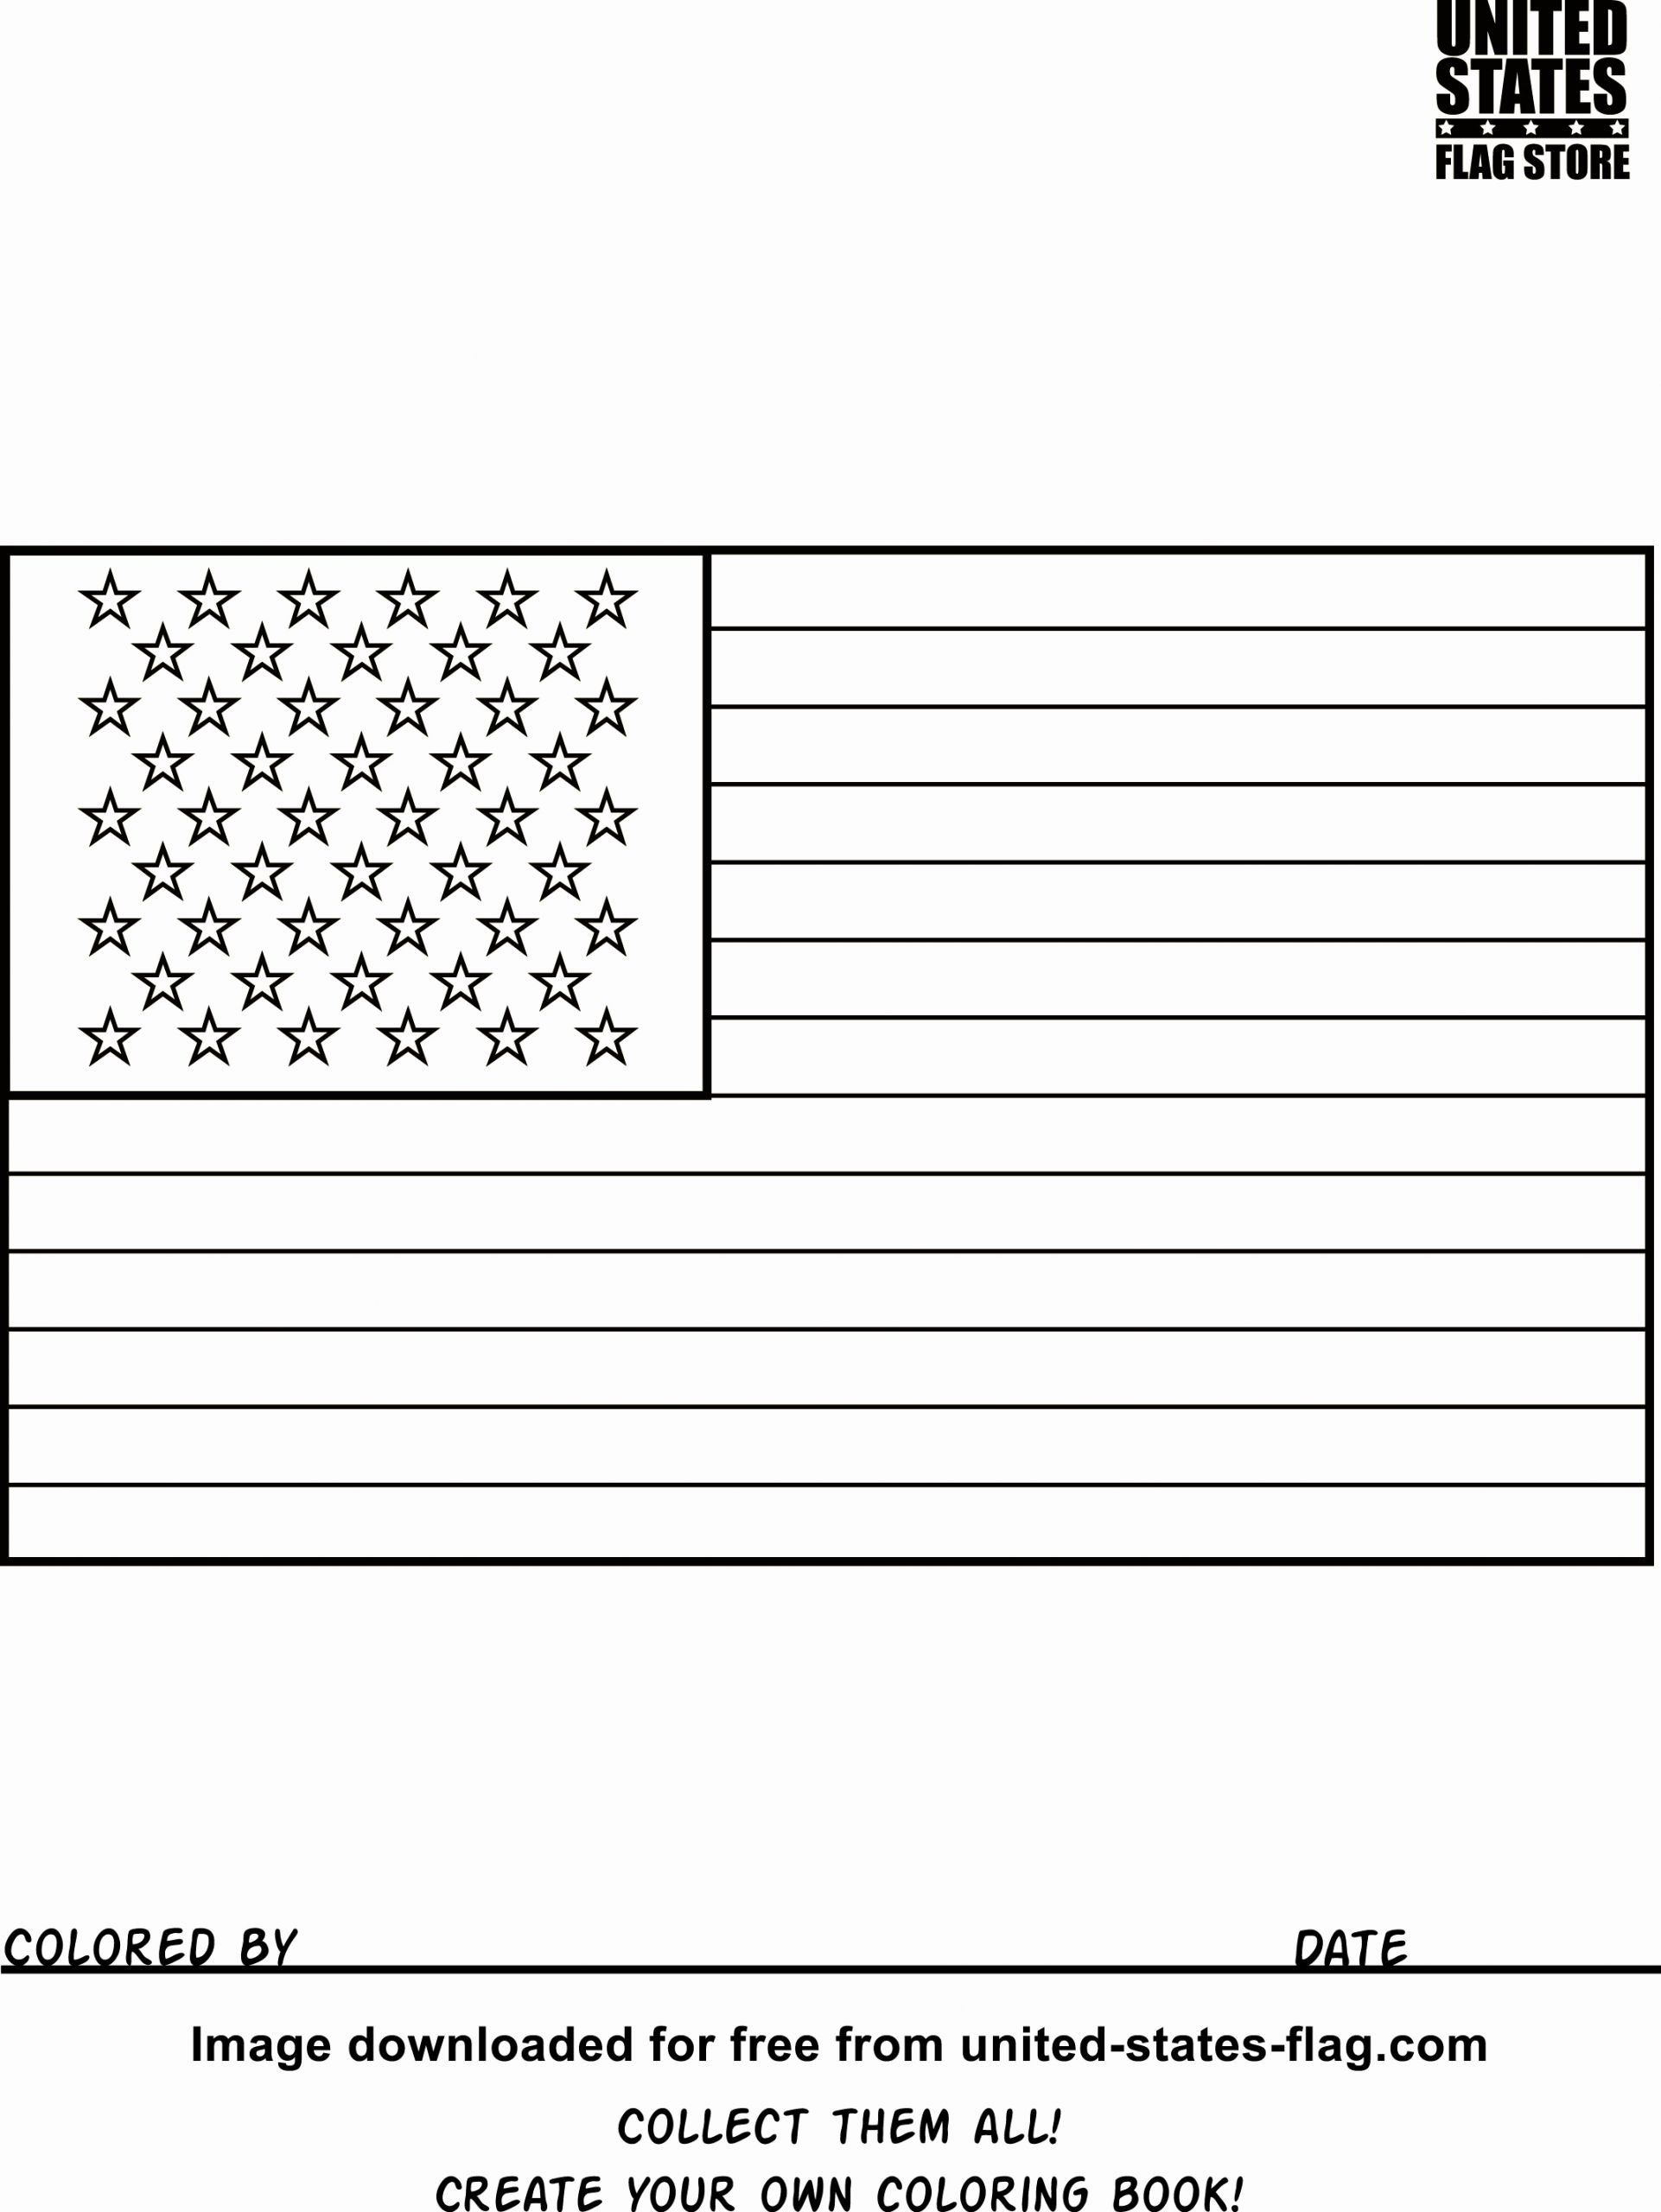 United States Flag Coloring Sheets in 2020 Flag coloring